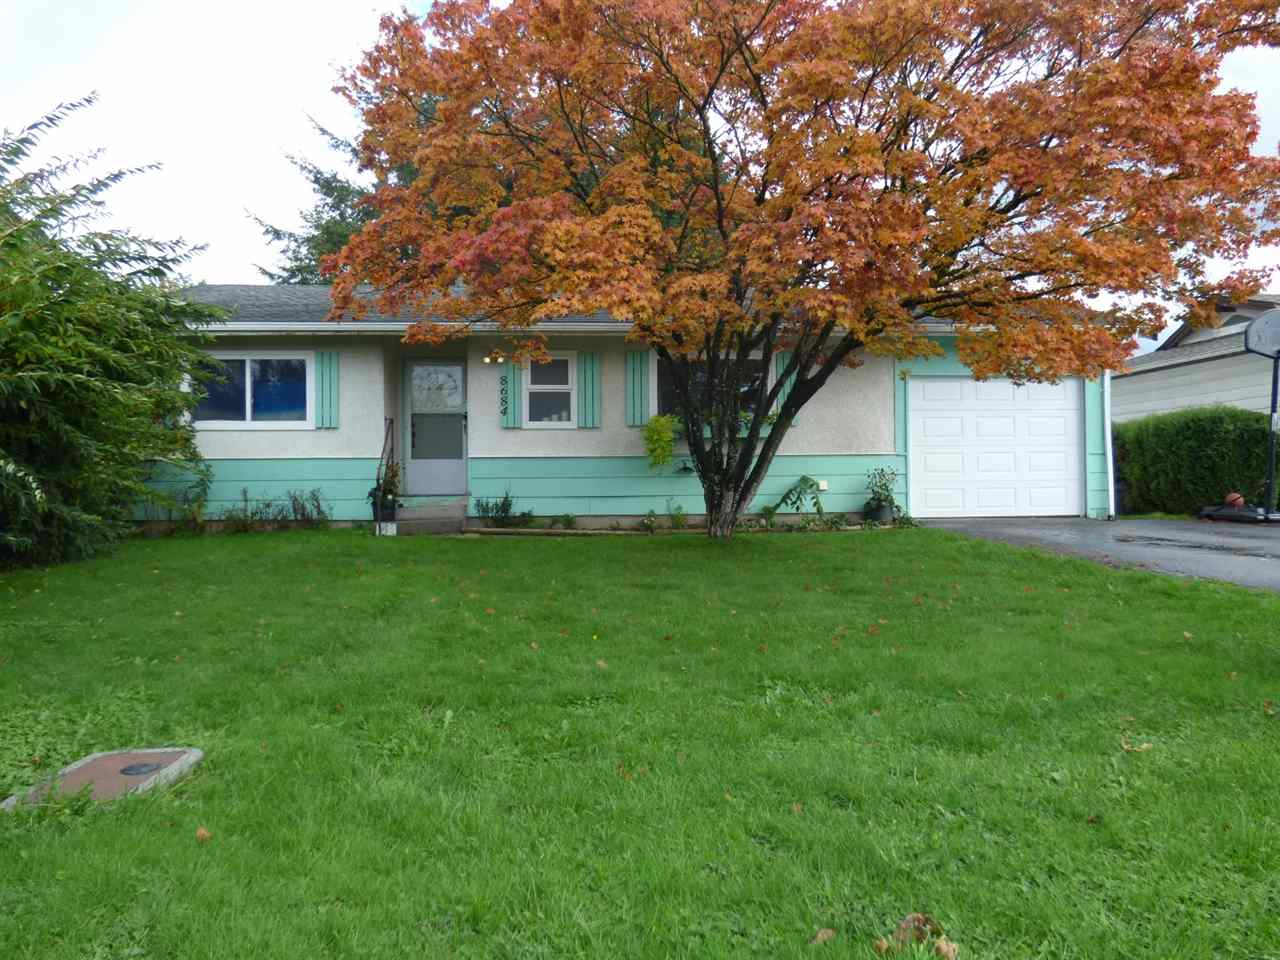 Main Photo: 8684 BROADWAY Street in Chilliwack: Chilliwack E Young-Yale House for sale : MLS®# R2118474